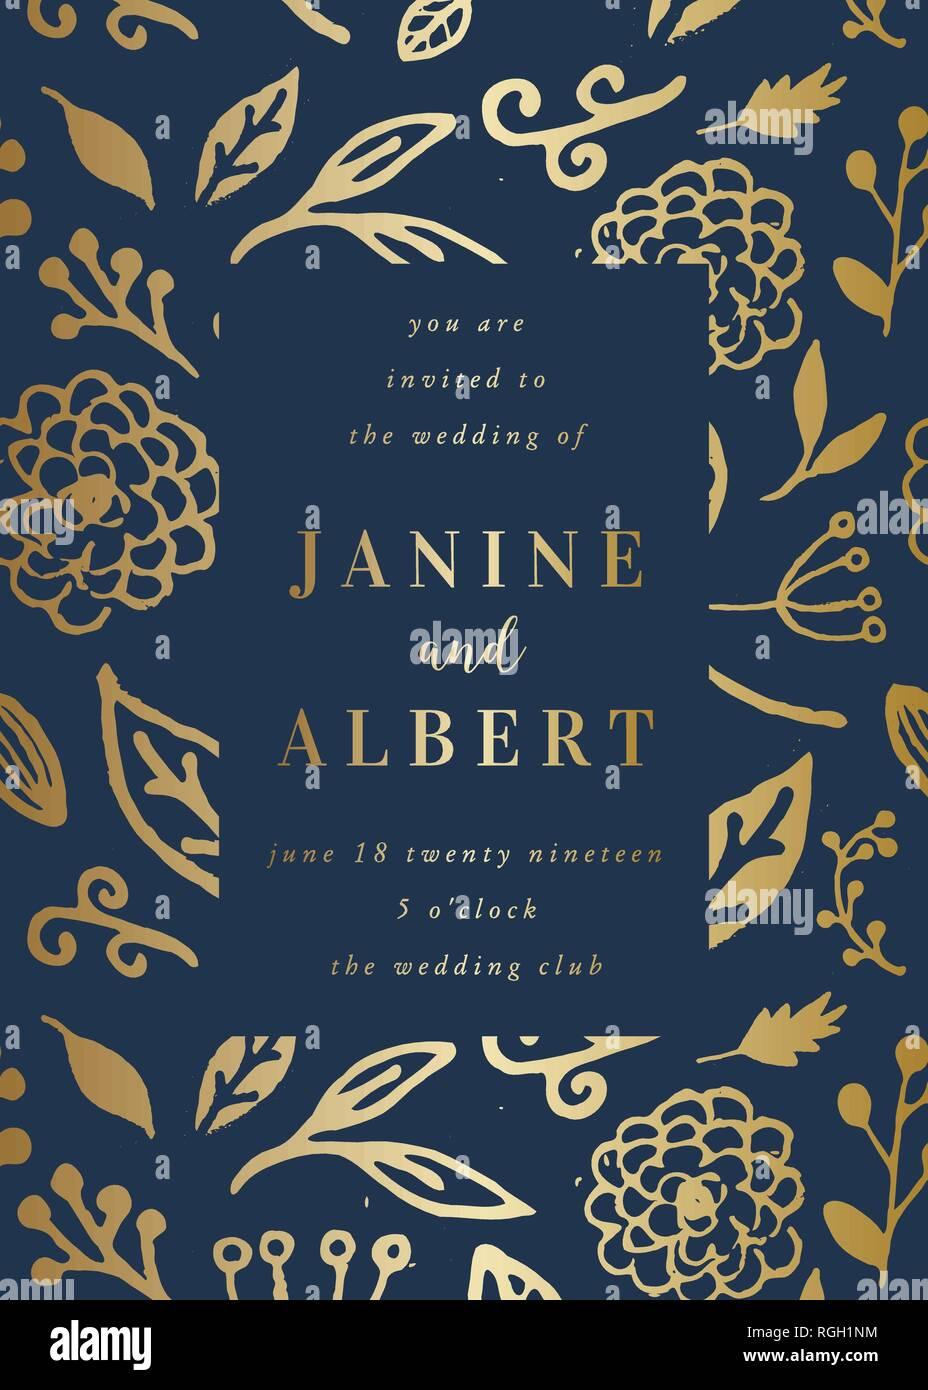 Wedding Invitation Design Template With Golden Florals On